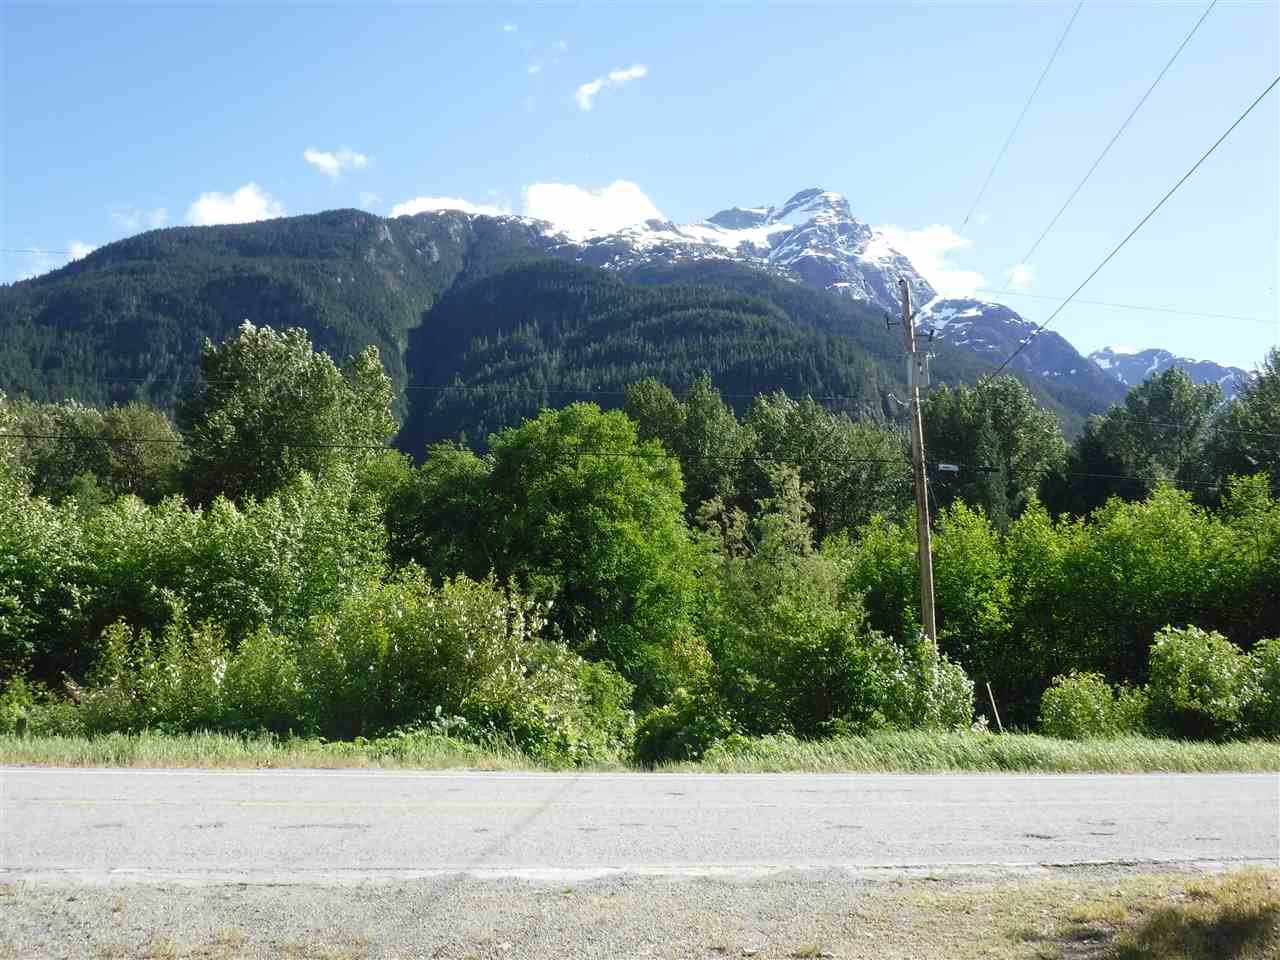 Photo 10: Photos: 3736 20 Highway in Bella Coola: Bella Coola/Hagensborg House for sale (Williams Lake (Zone 27))  : MLS®# R2376163